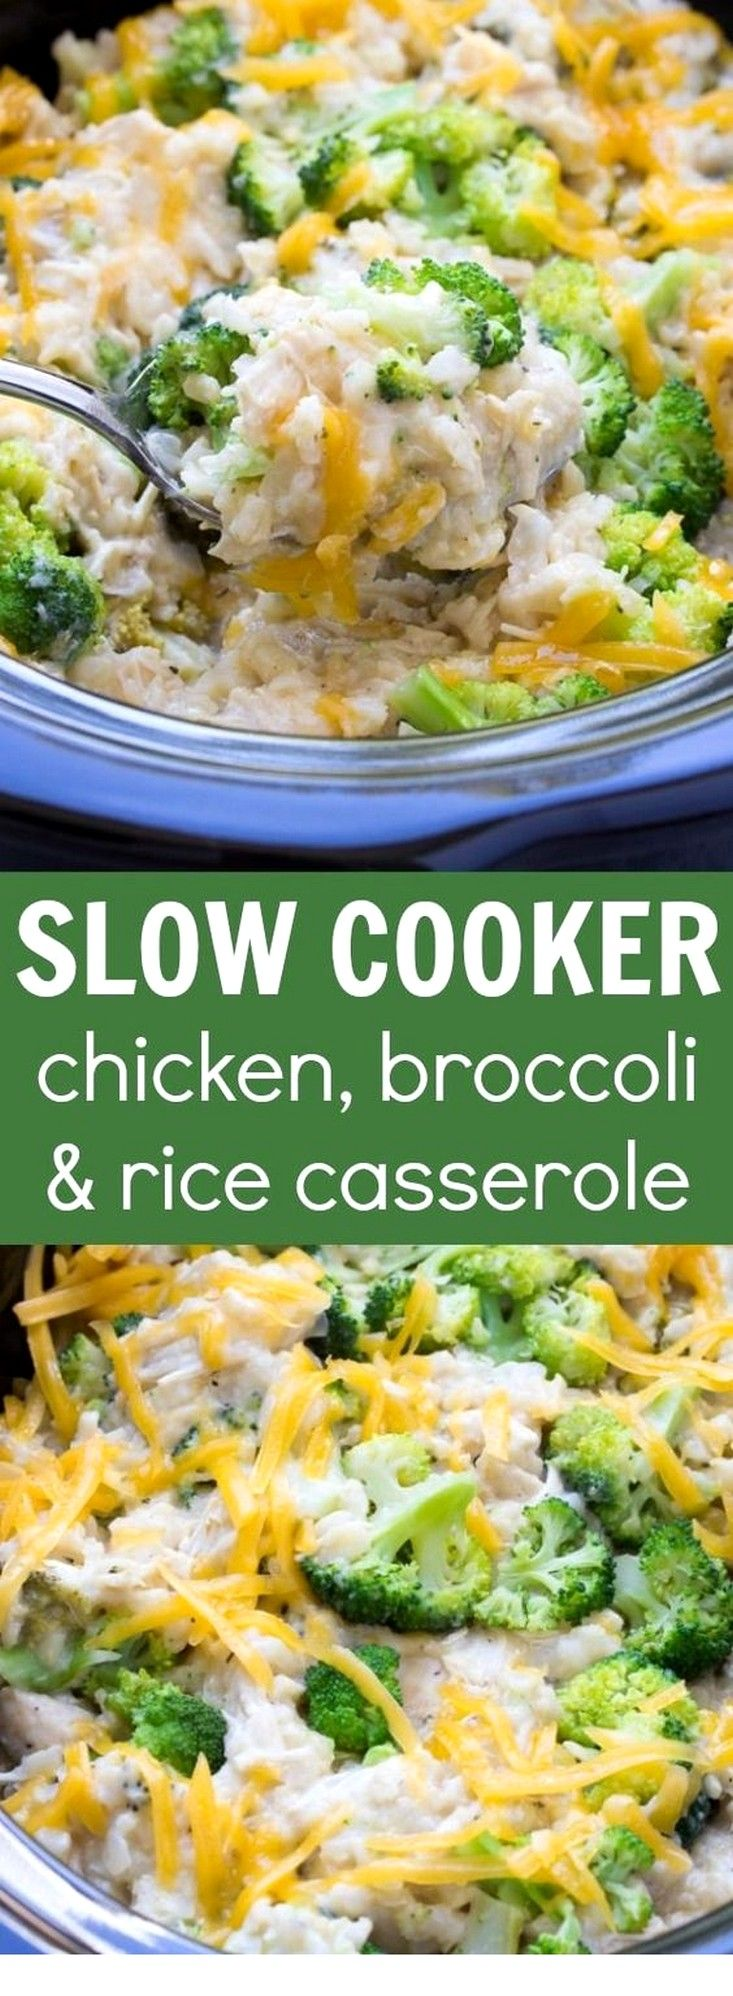 Slow Cooker Chicken, Broccoli And Rice Casserole | Slow Cooker Recipes #ricecookermeals